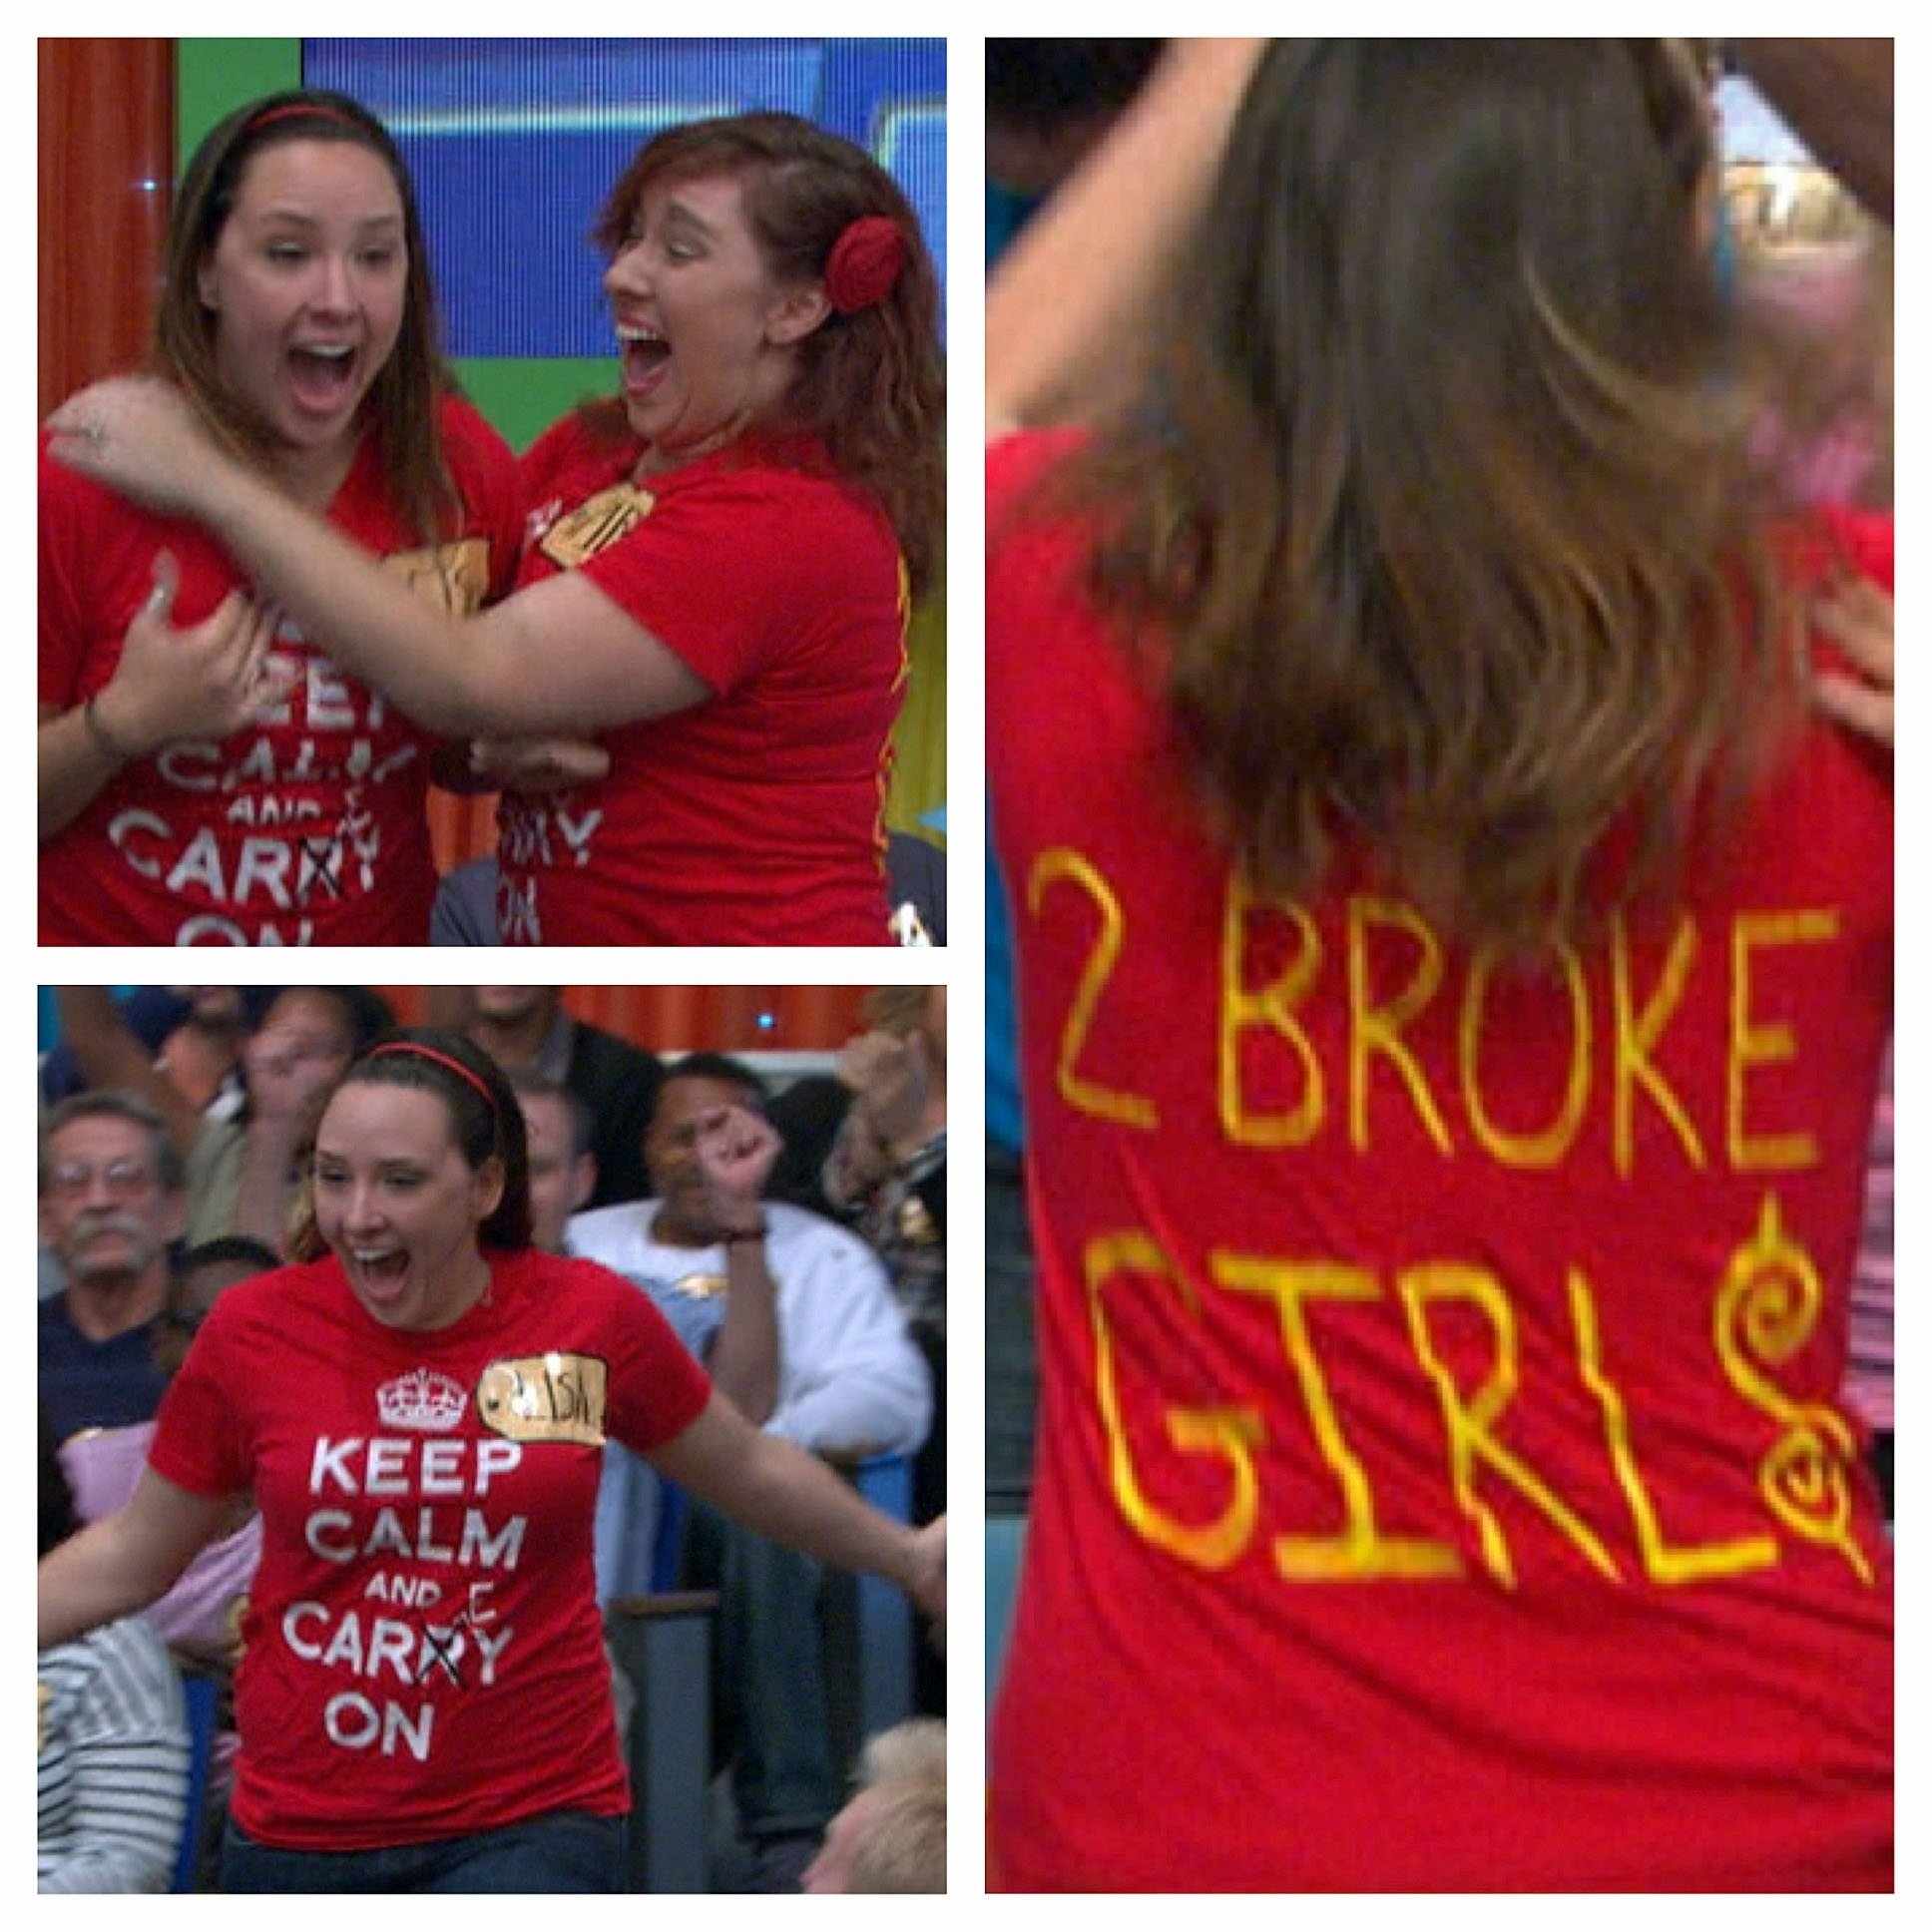 10 Lovely Price Is Right T Shirt Ideas tweets and sneak peeks page 43 the price is right photos cbs 1